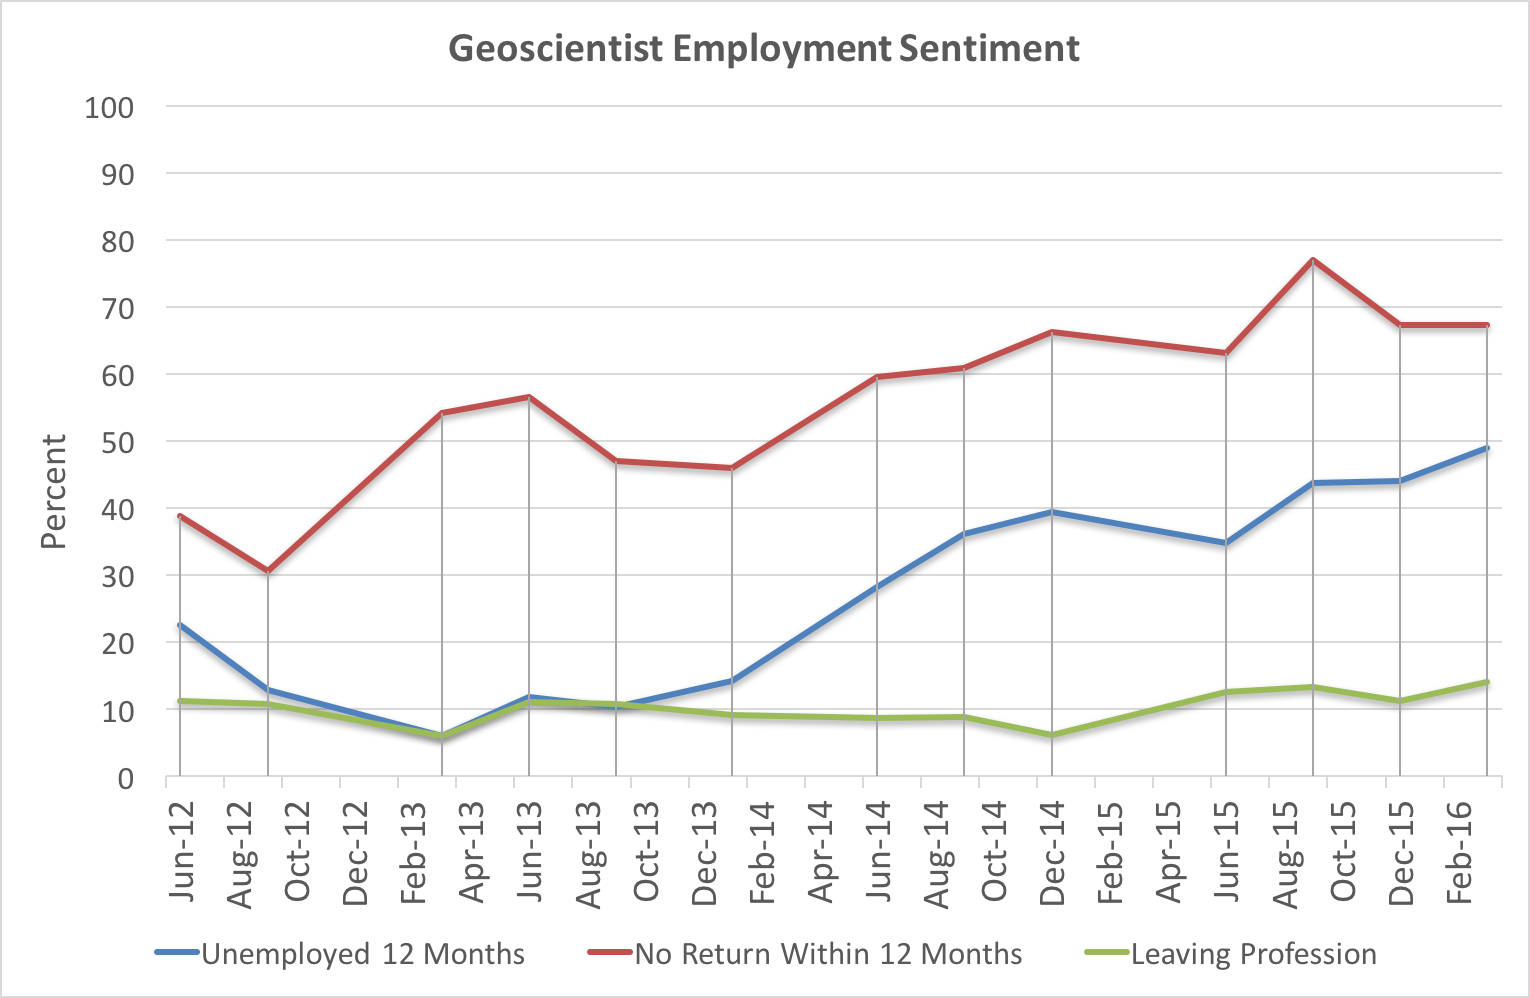 Figure 4. How Australia's unemployed and underemployed geoscientists view their prospects